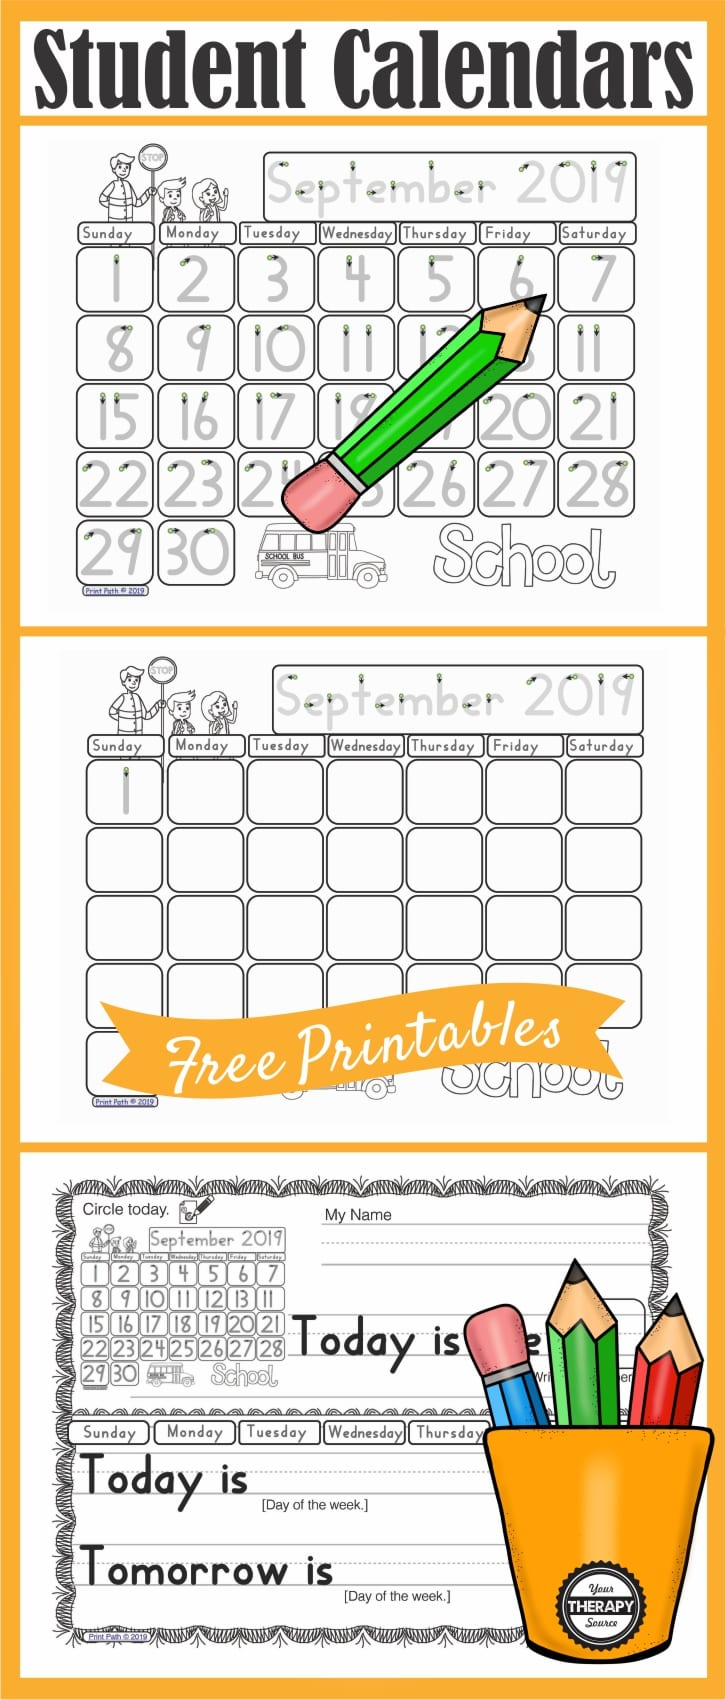 These FREE morning meeting calendar work printables, created by school-based Occupational Therapist Thia Triggs, provide differentiated instruction for students to participate during calendar time and morning work. This freebie is great for individual, group and contextually based therapy sessions. Reinforce your student's IEP math and ELA goals while focusing on your own therapeutic objectives.